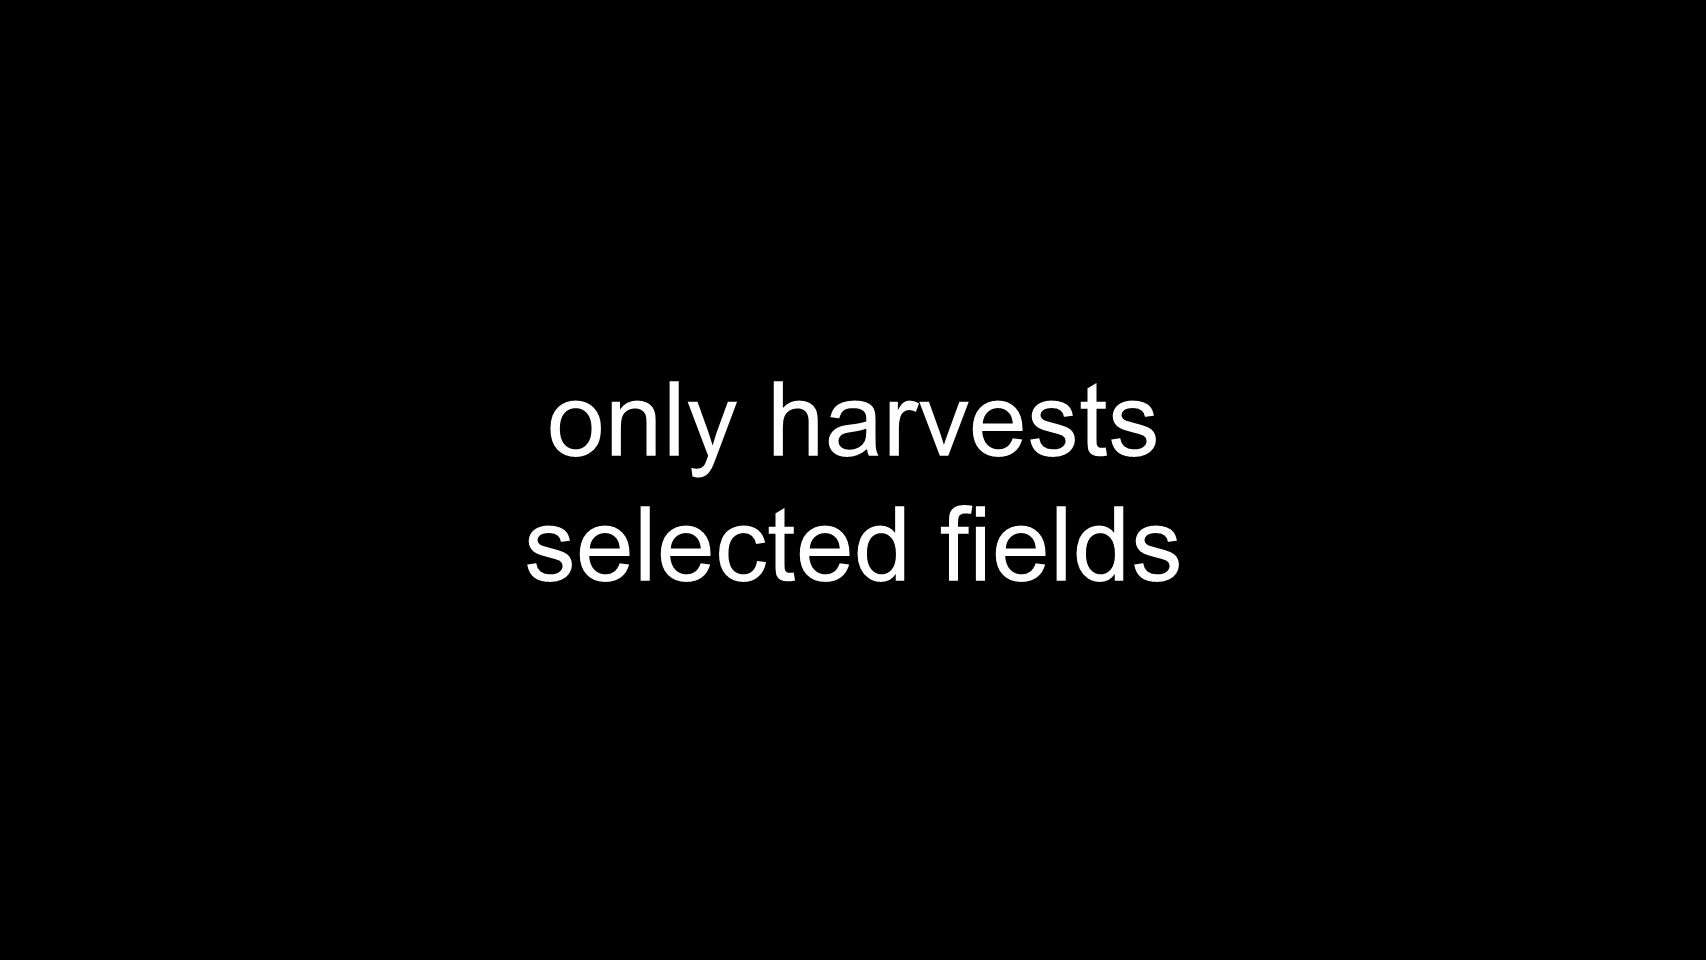 only harvests selected fields